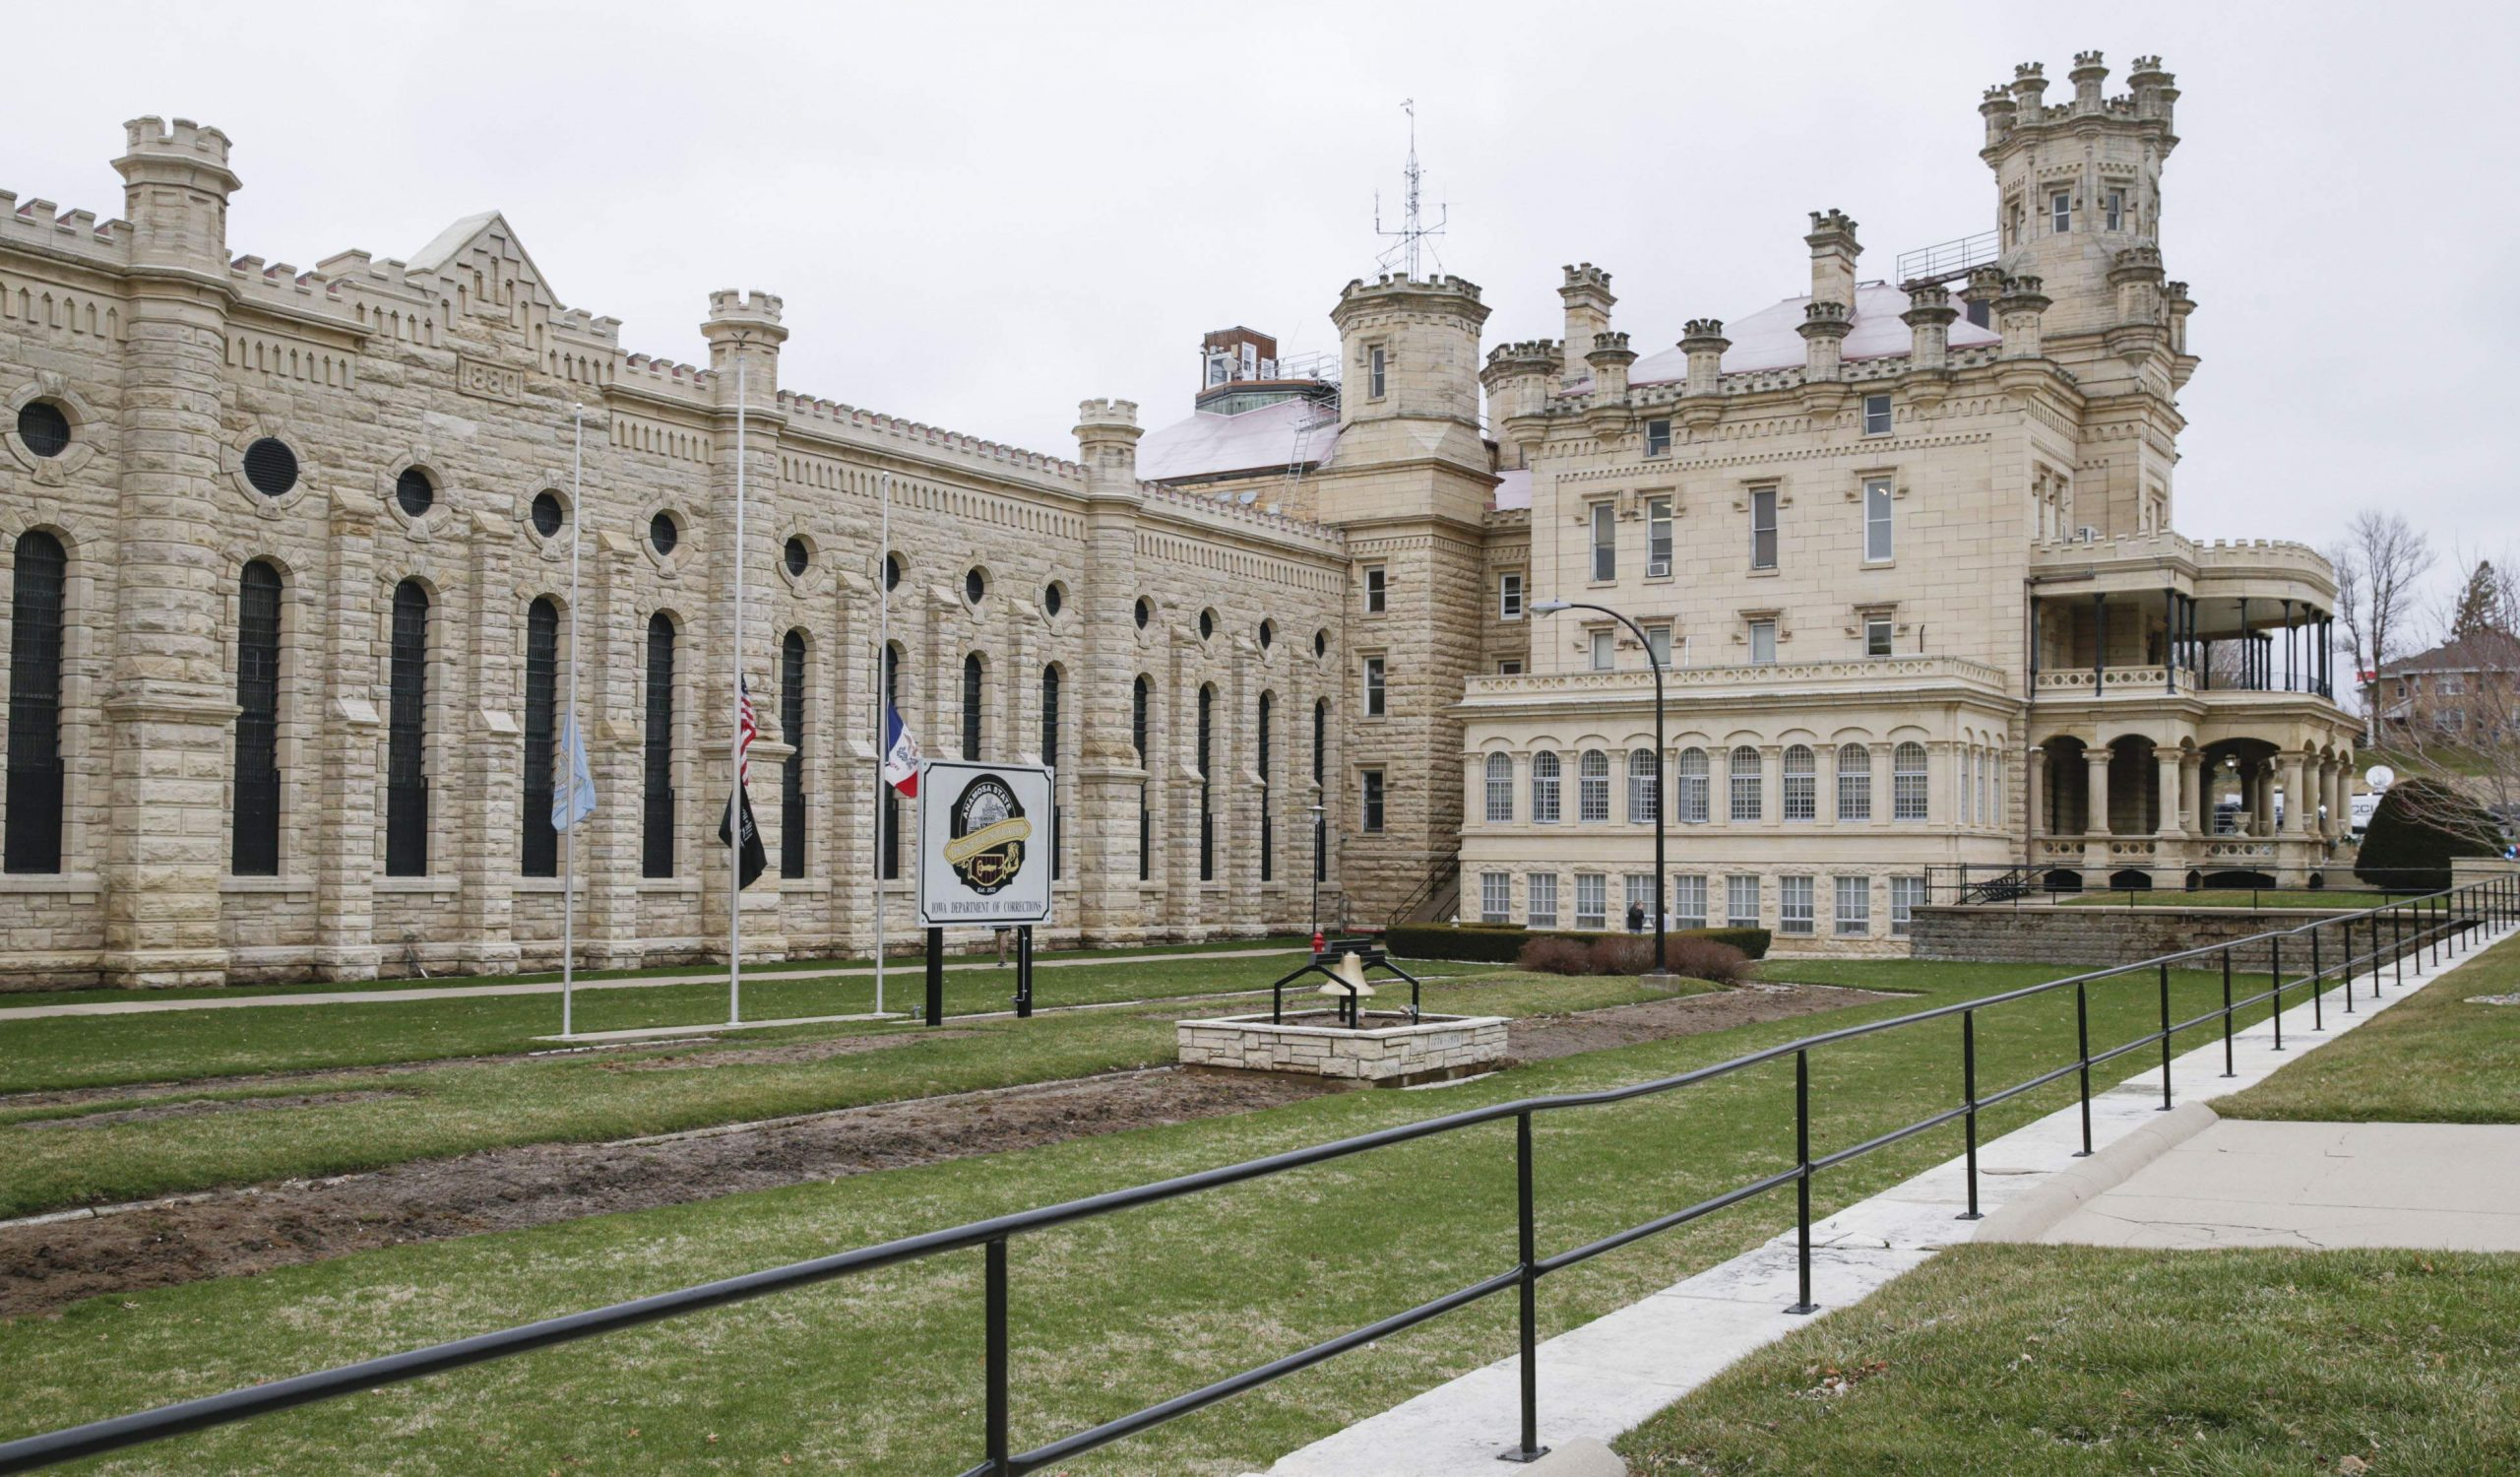 anamosa-prison-killings-linked-to-staff-shortages-afscme-says